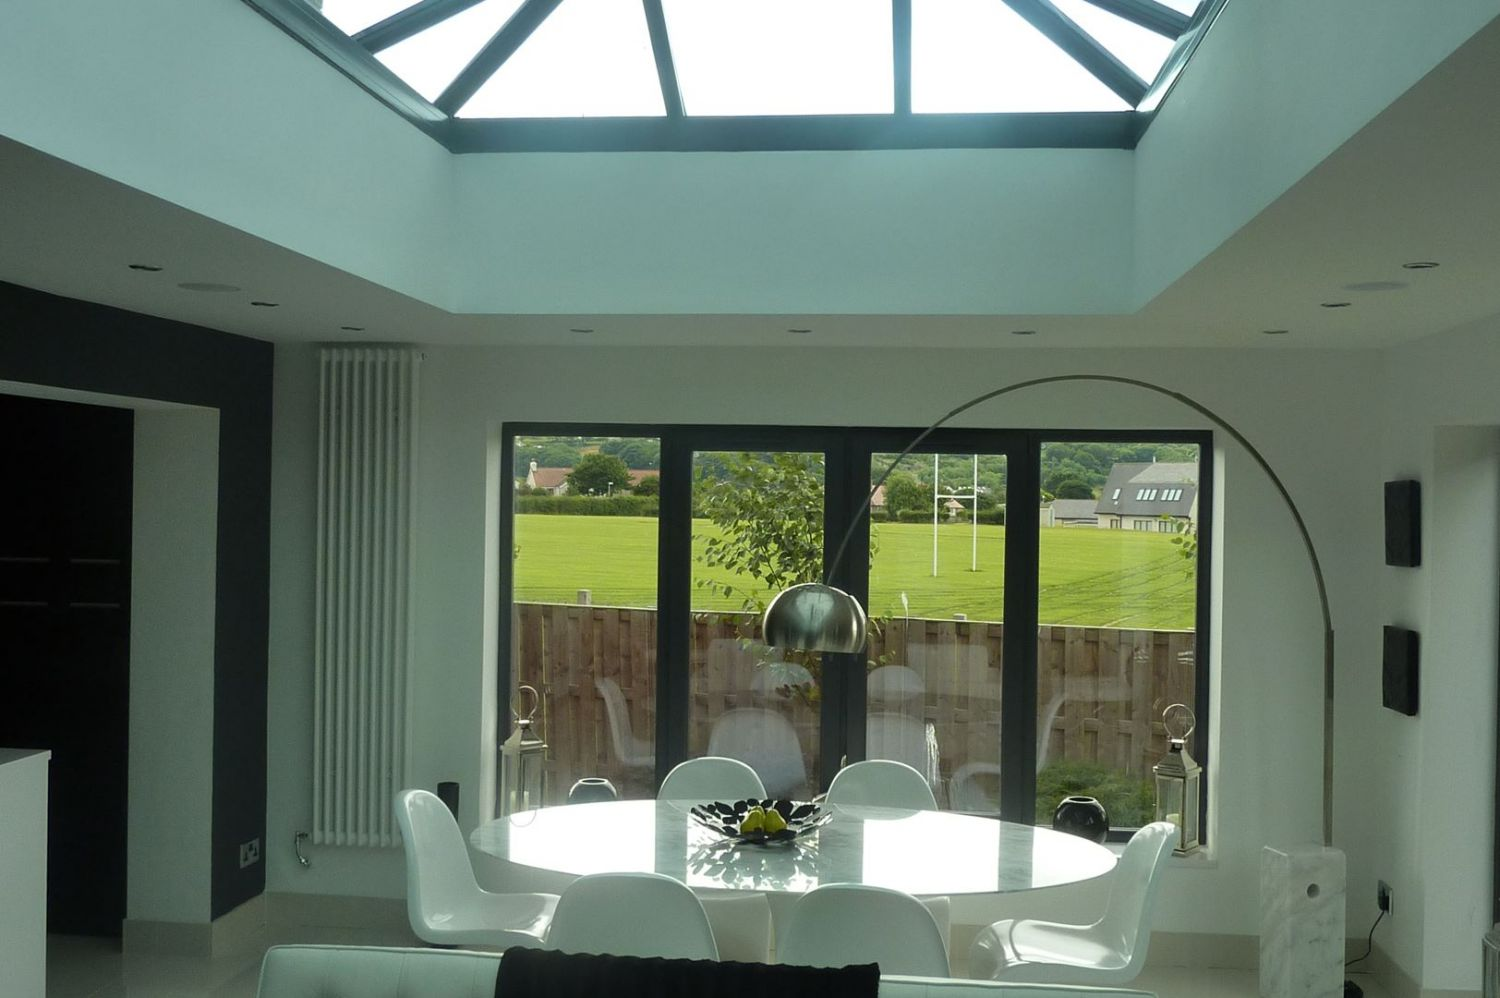 Orangery Extension to form Family / Dining Area